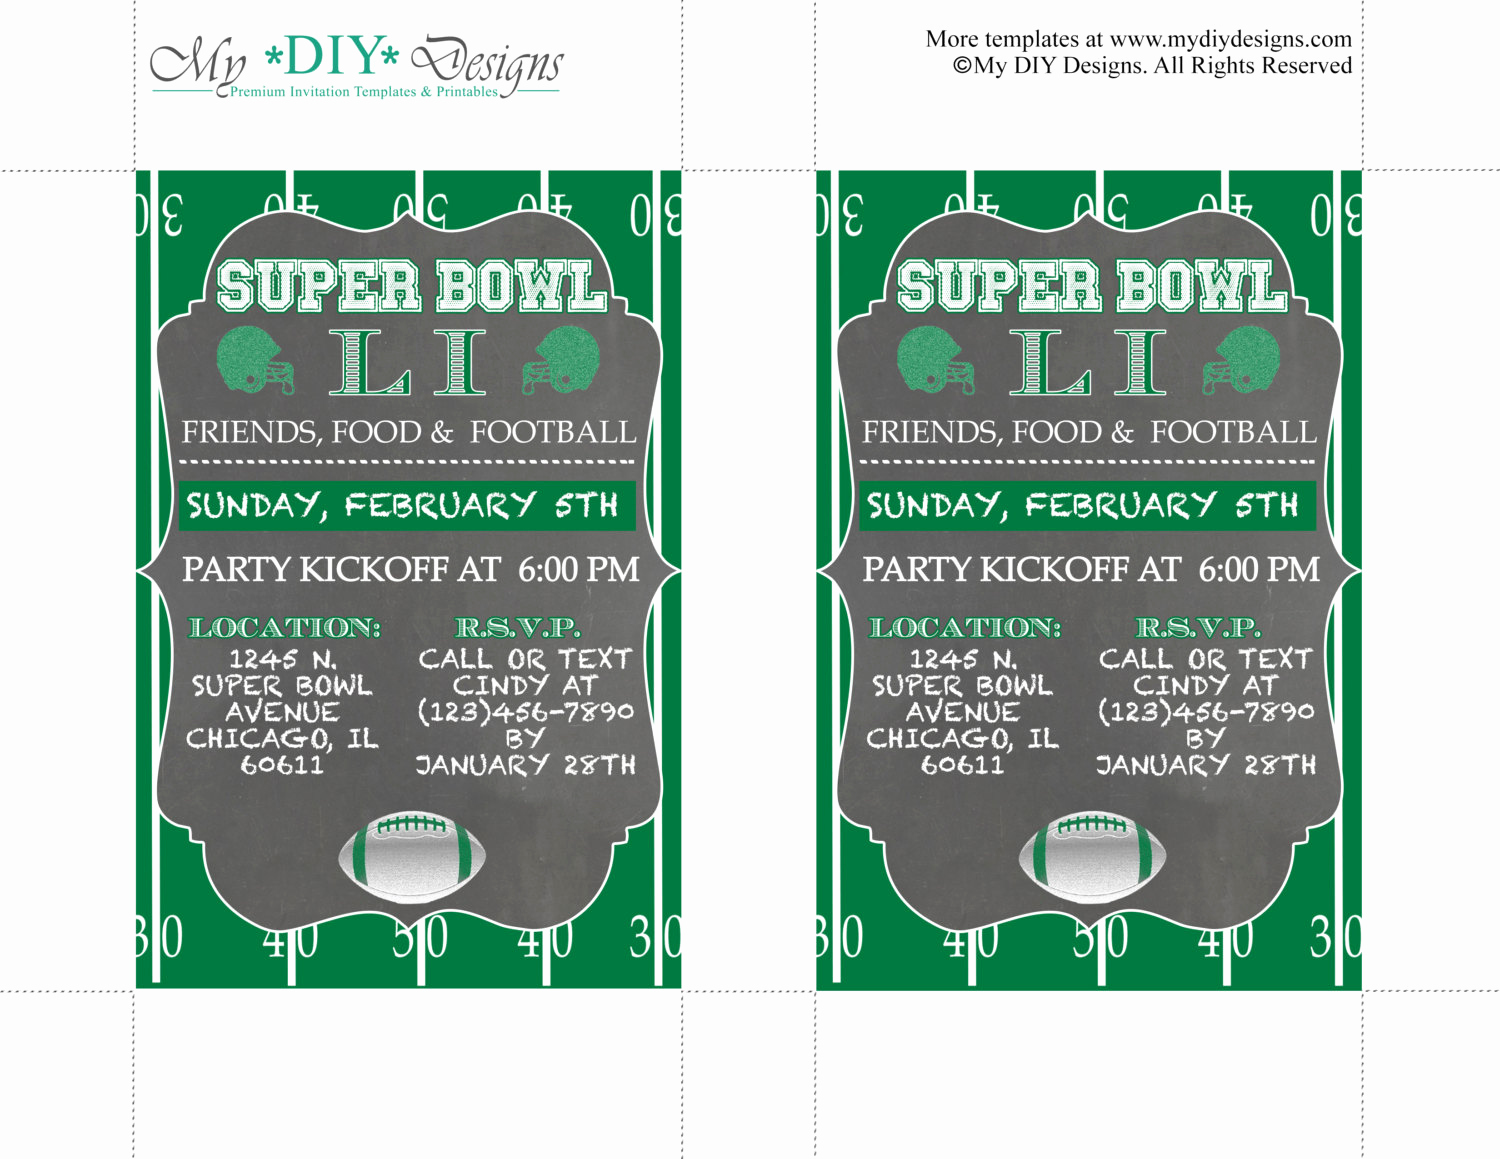 Super Bowl Invitation Template Elegant Chalkboard Super Bowl Invitation Editable Template